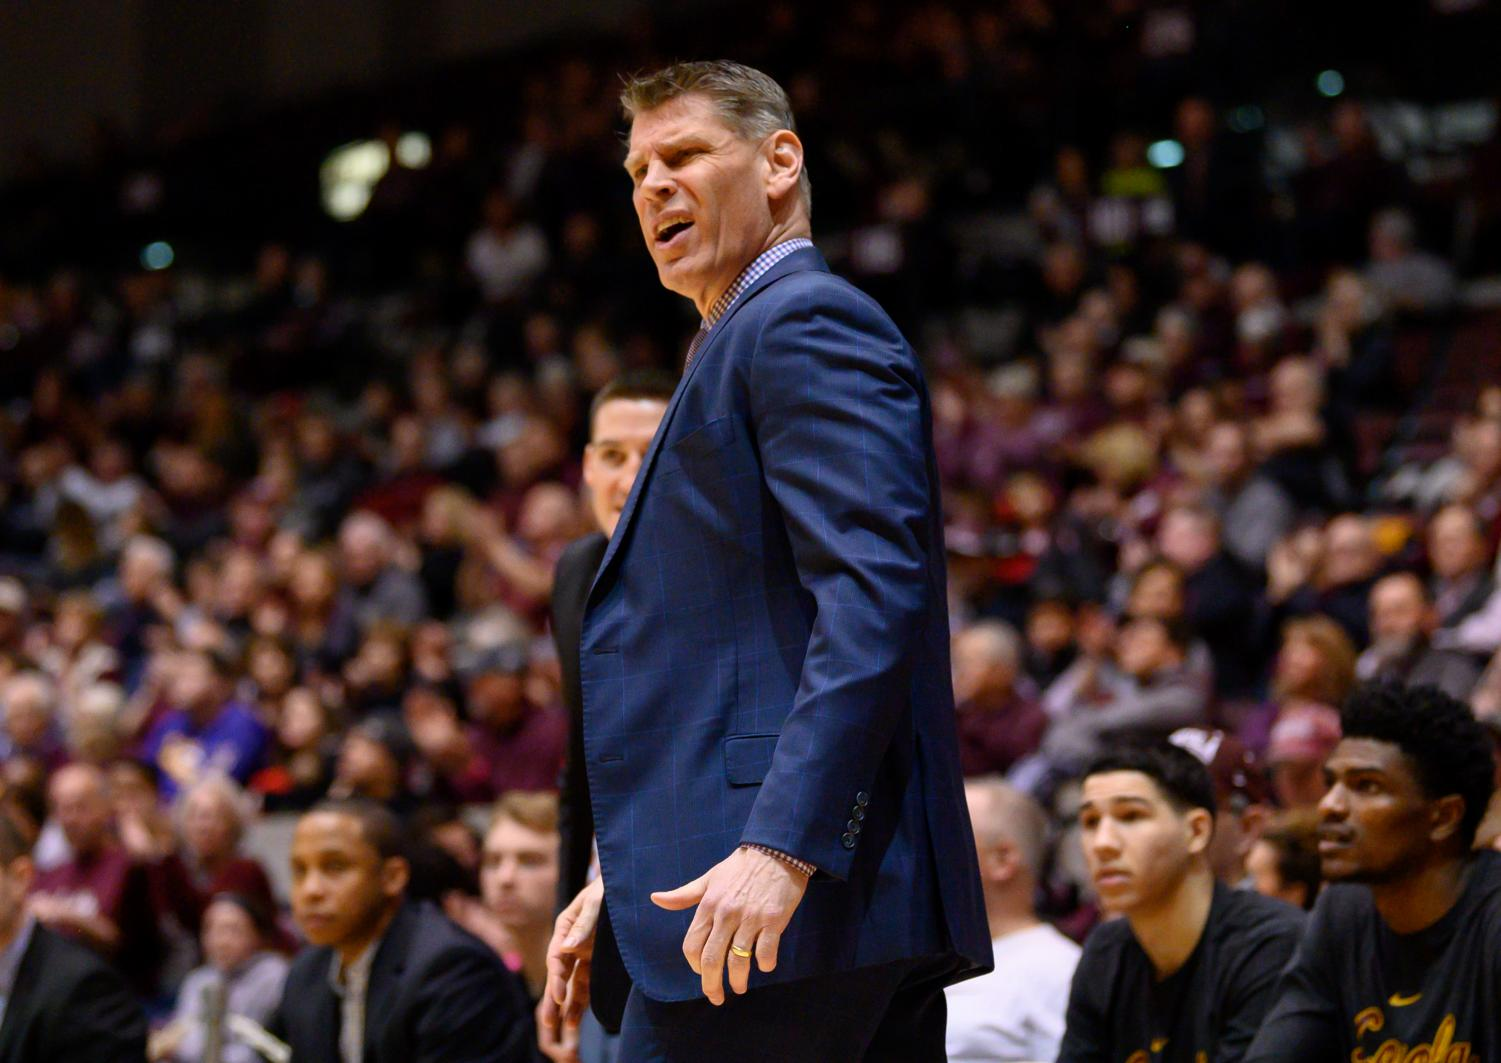 Loyola+Ramblers+head+coach+Porter+Moser+reacts+to+a+call+on+Sunday%2C+Feb.+24%2C+2019%2C+during+a+matchup+between+the+Southern+Illinois+Salukis+and+the+Loyola+Ramblers+at+SIU+Arena.